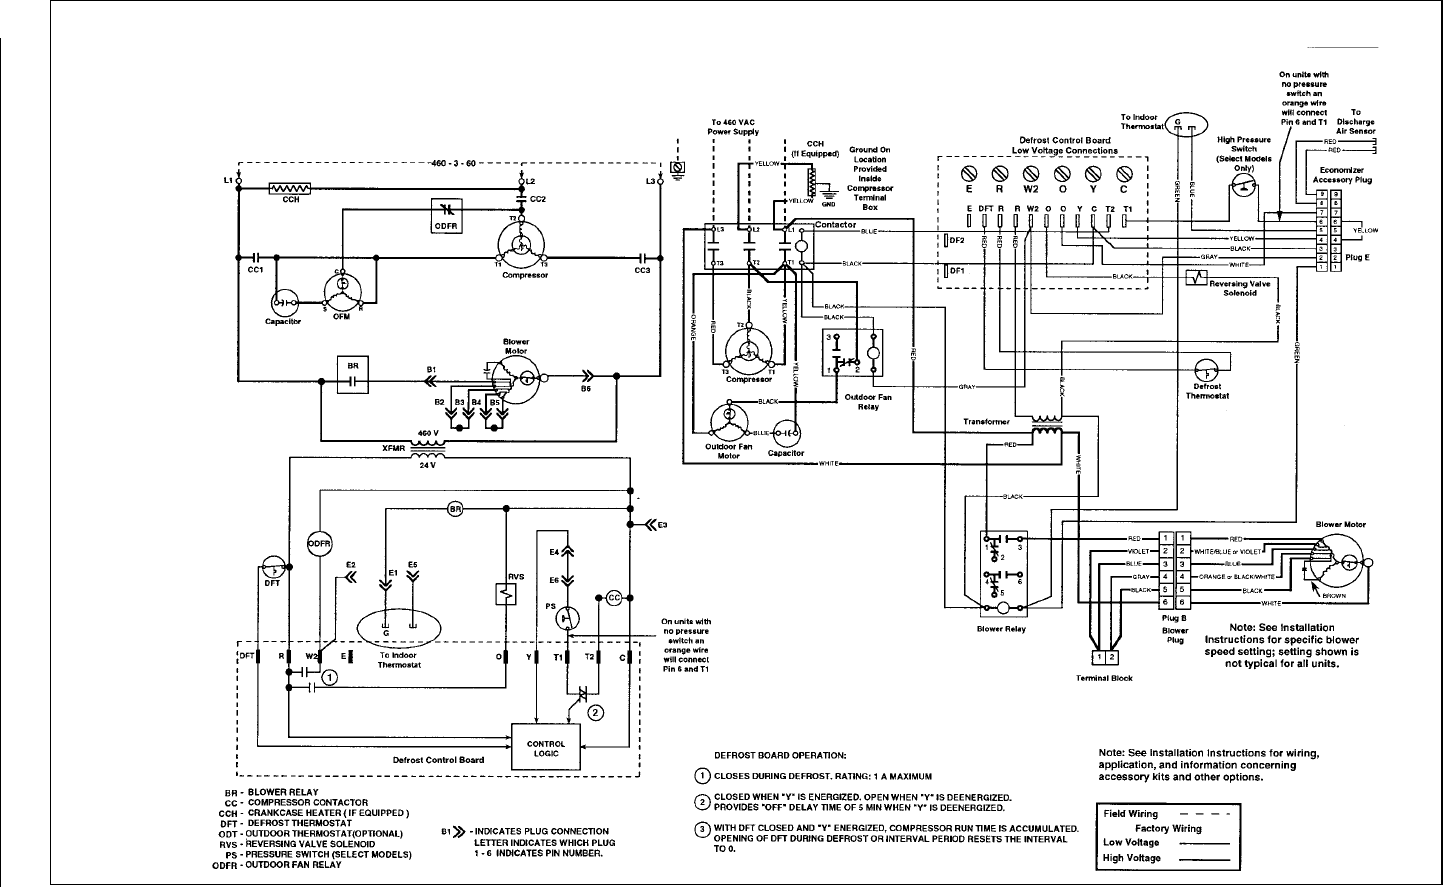 12ef14e5 f0fc 4598 8d26 d64902da494b bg12 wiring diagram for coleman furnace the wiring diagram nordyne heat pump wiring diagram at readyjetset.co